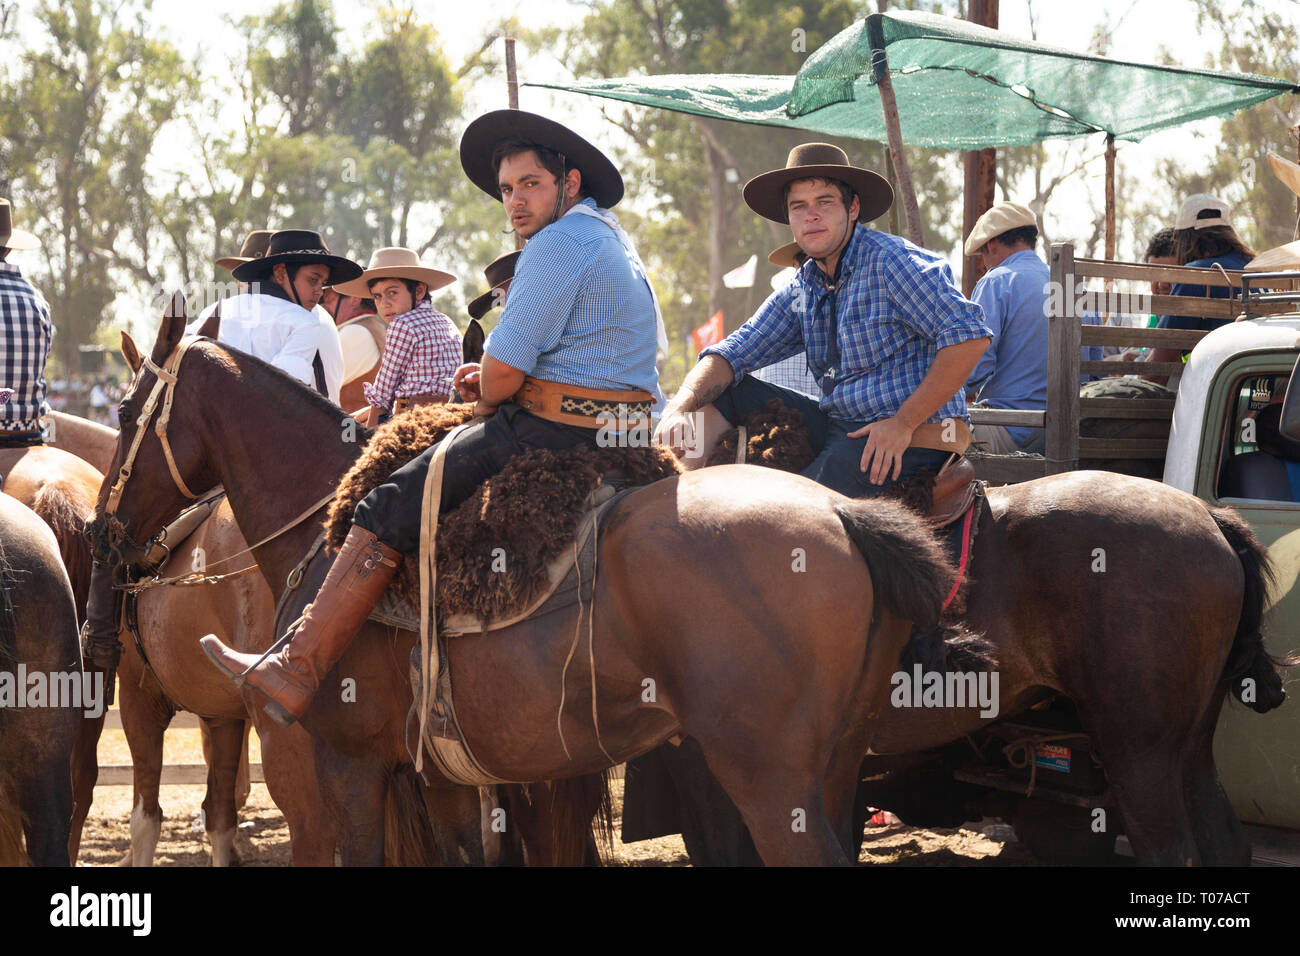 Tacuarembo, Uruguay. 16th Mar, 2019. Local spectators watch the Rodeo riding their horses during the ''Patria Gaucha'' in Tacuarembo.Every March, for 33 years now in Tacuarembó, a town 400 kilometers from Montevideo, the Capital of Uruguay, is celebrated the most important event in the country, ''La Patria Gaucha'' (The Gaucho Homeland) The event lasts six days, and calls more than fifty thousand people from all over the country and the world. Four thousand riders meet to parade down the main street of the town and the best of them compete for the first prize at the horse rodeo. ''La Patri - Stock Image